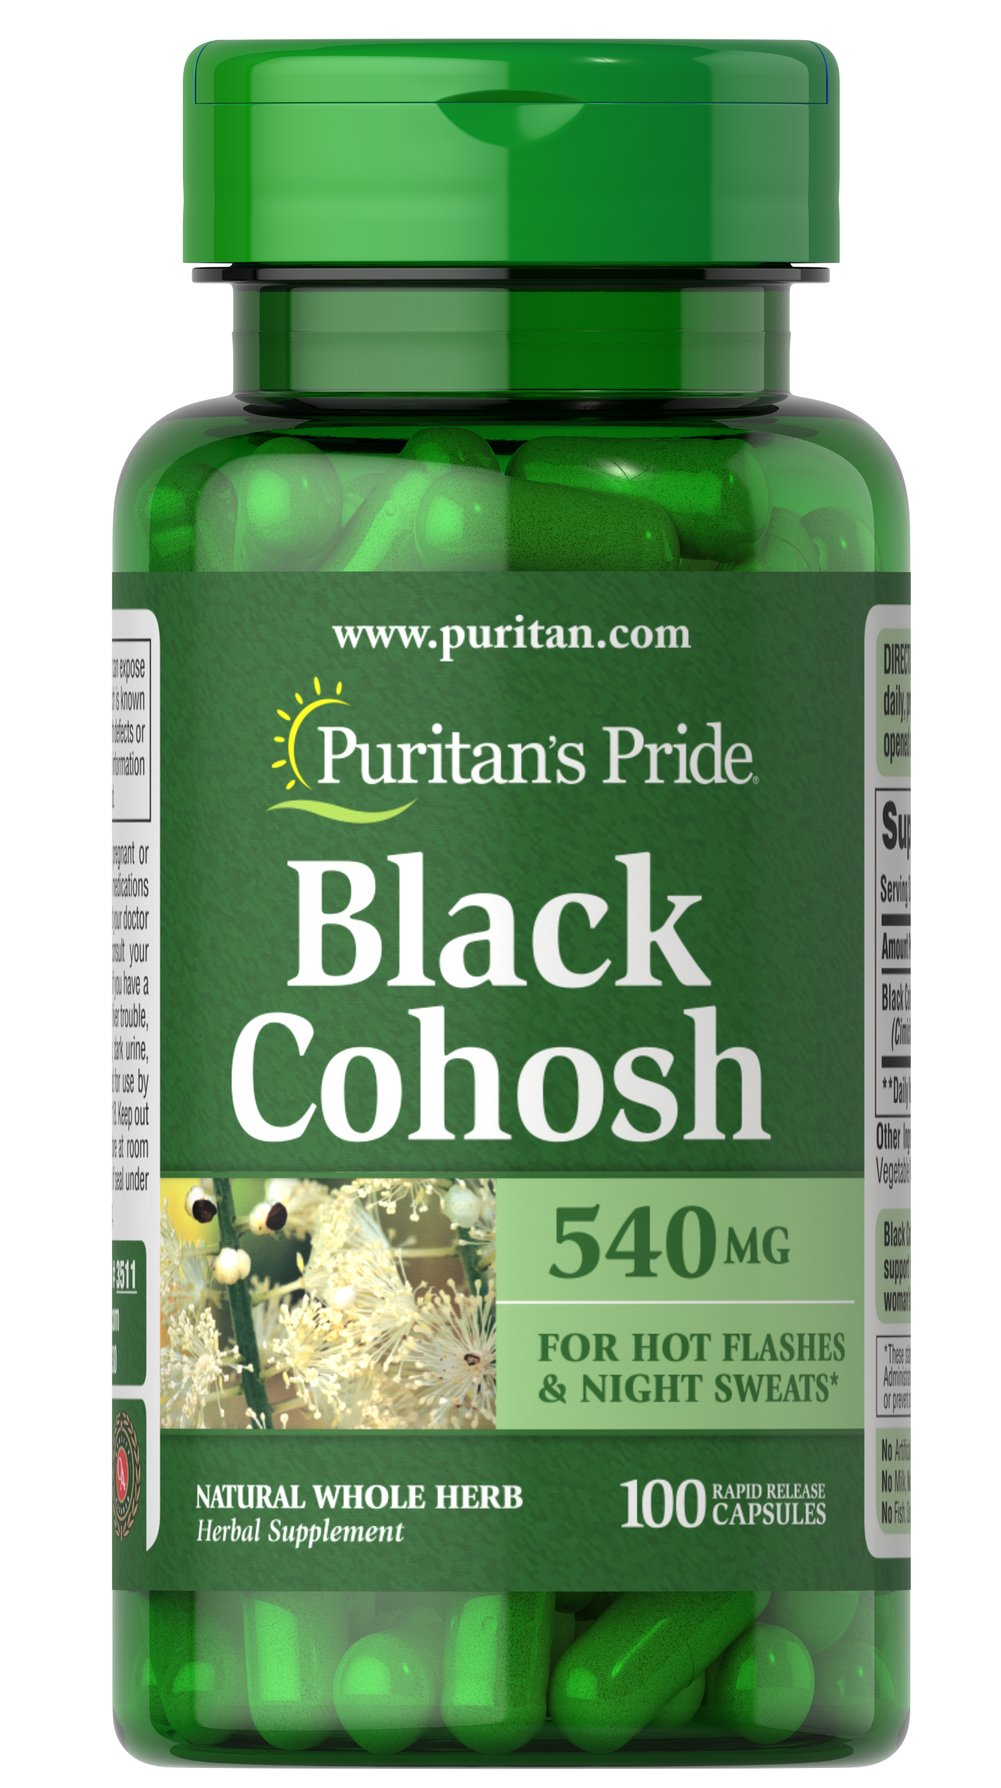 Black Cohosh 540 mg  100 Capsules 540 mg $13.99